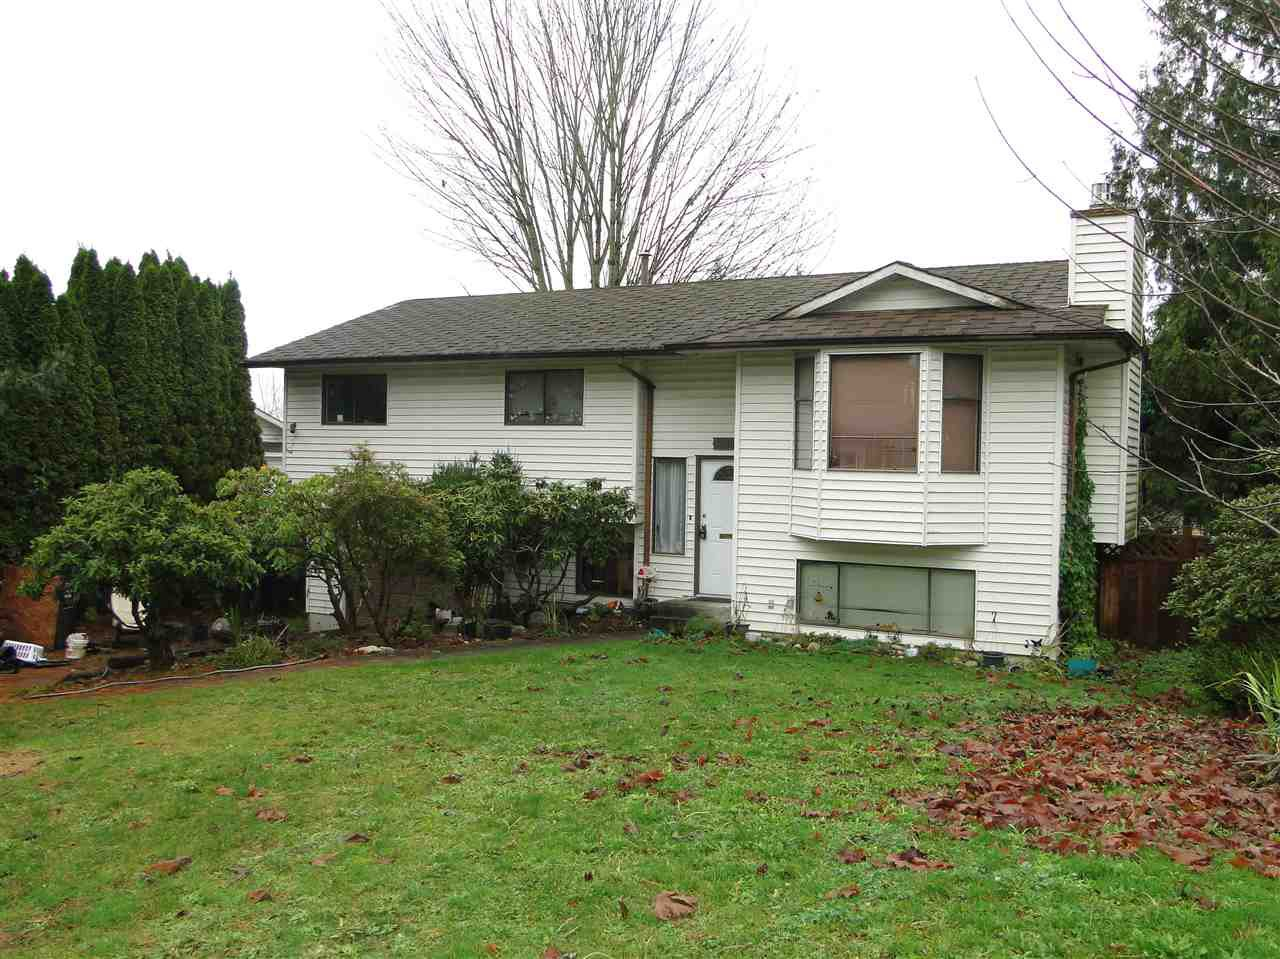 Main Photo: 7925 PLOVER Street in Mission: Mission BC House for sale : MLS®# R2125715